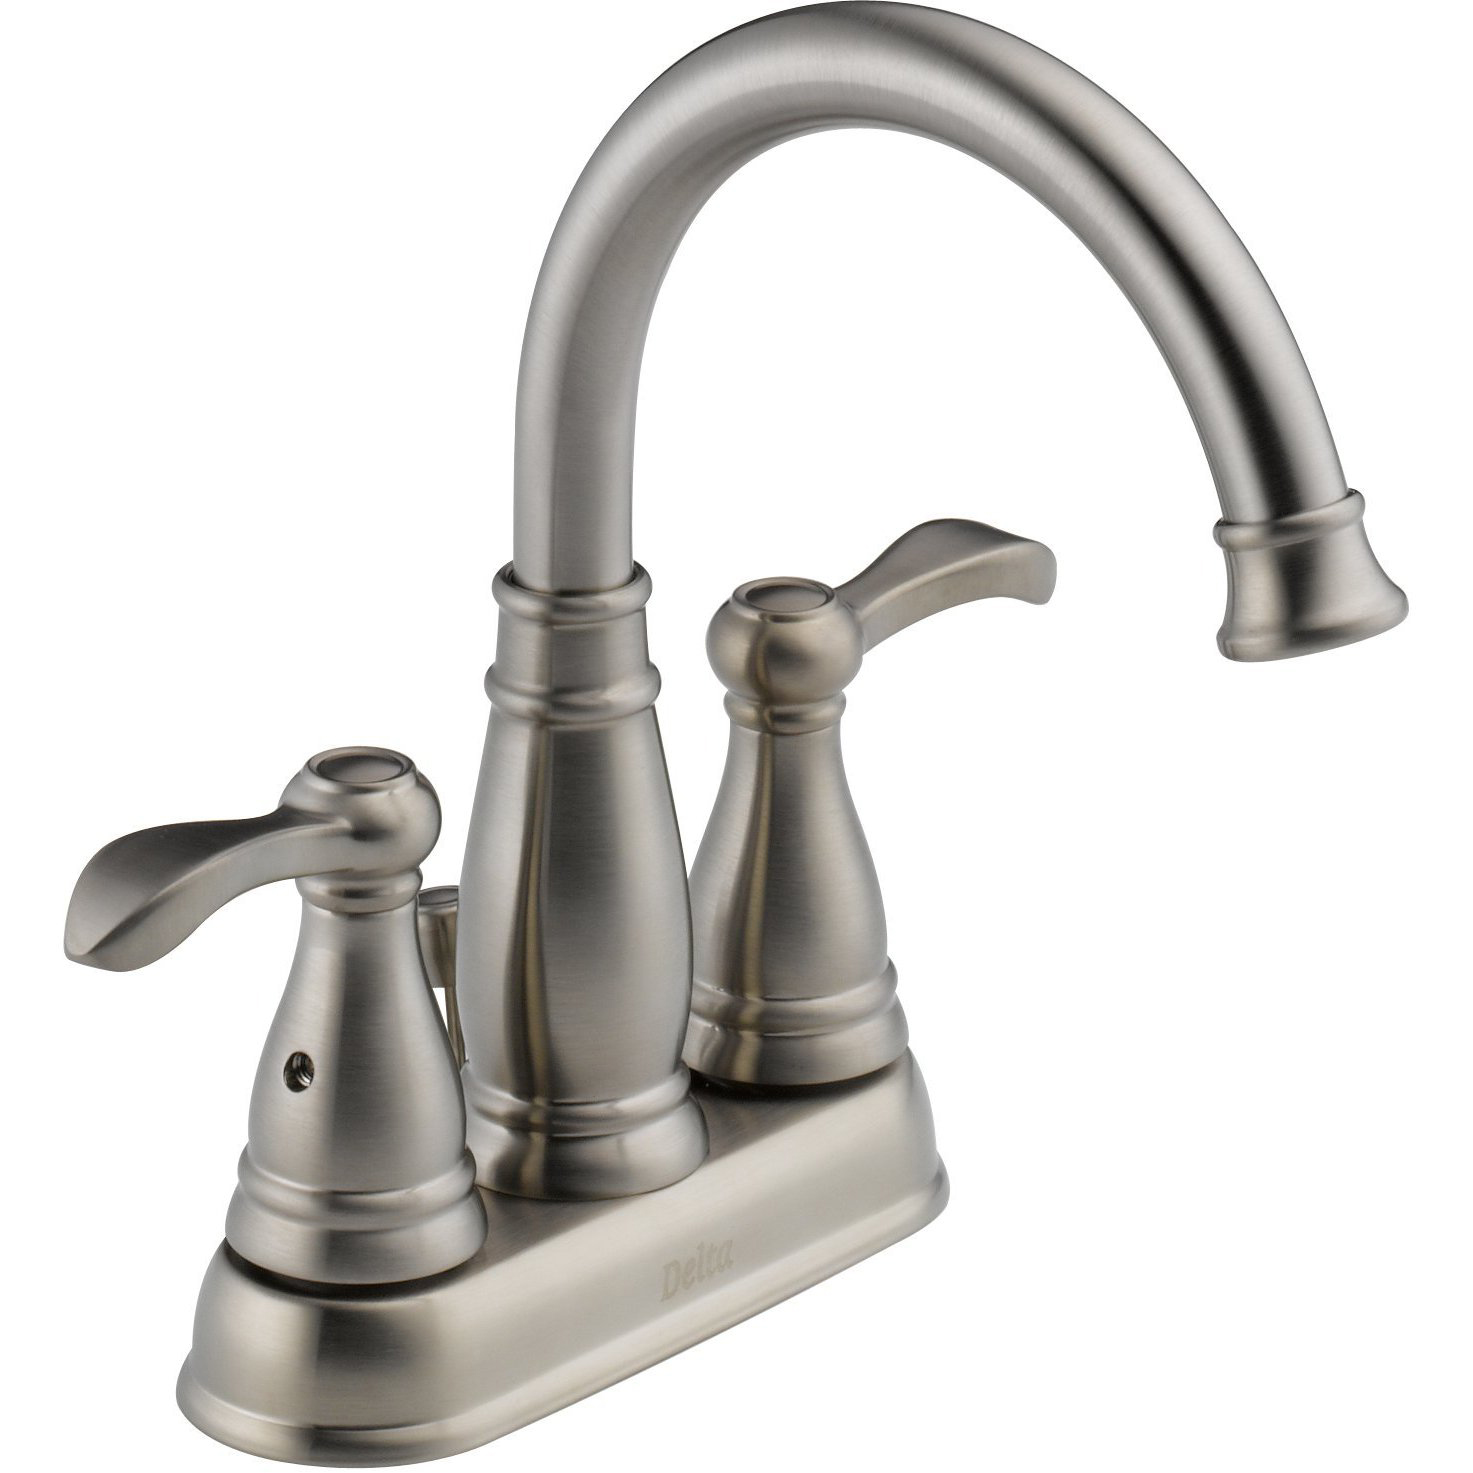 Kitchen Sink Faucets Bathroom Sink Faucets Tub and Shower Faucets